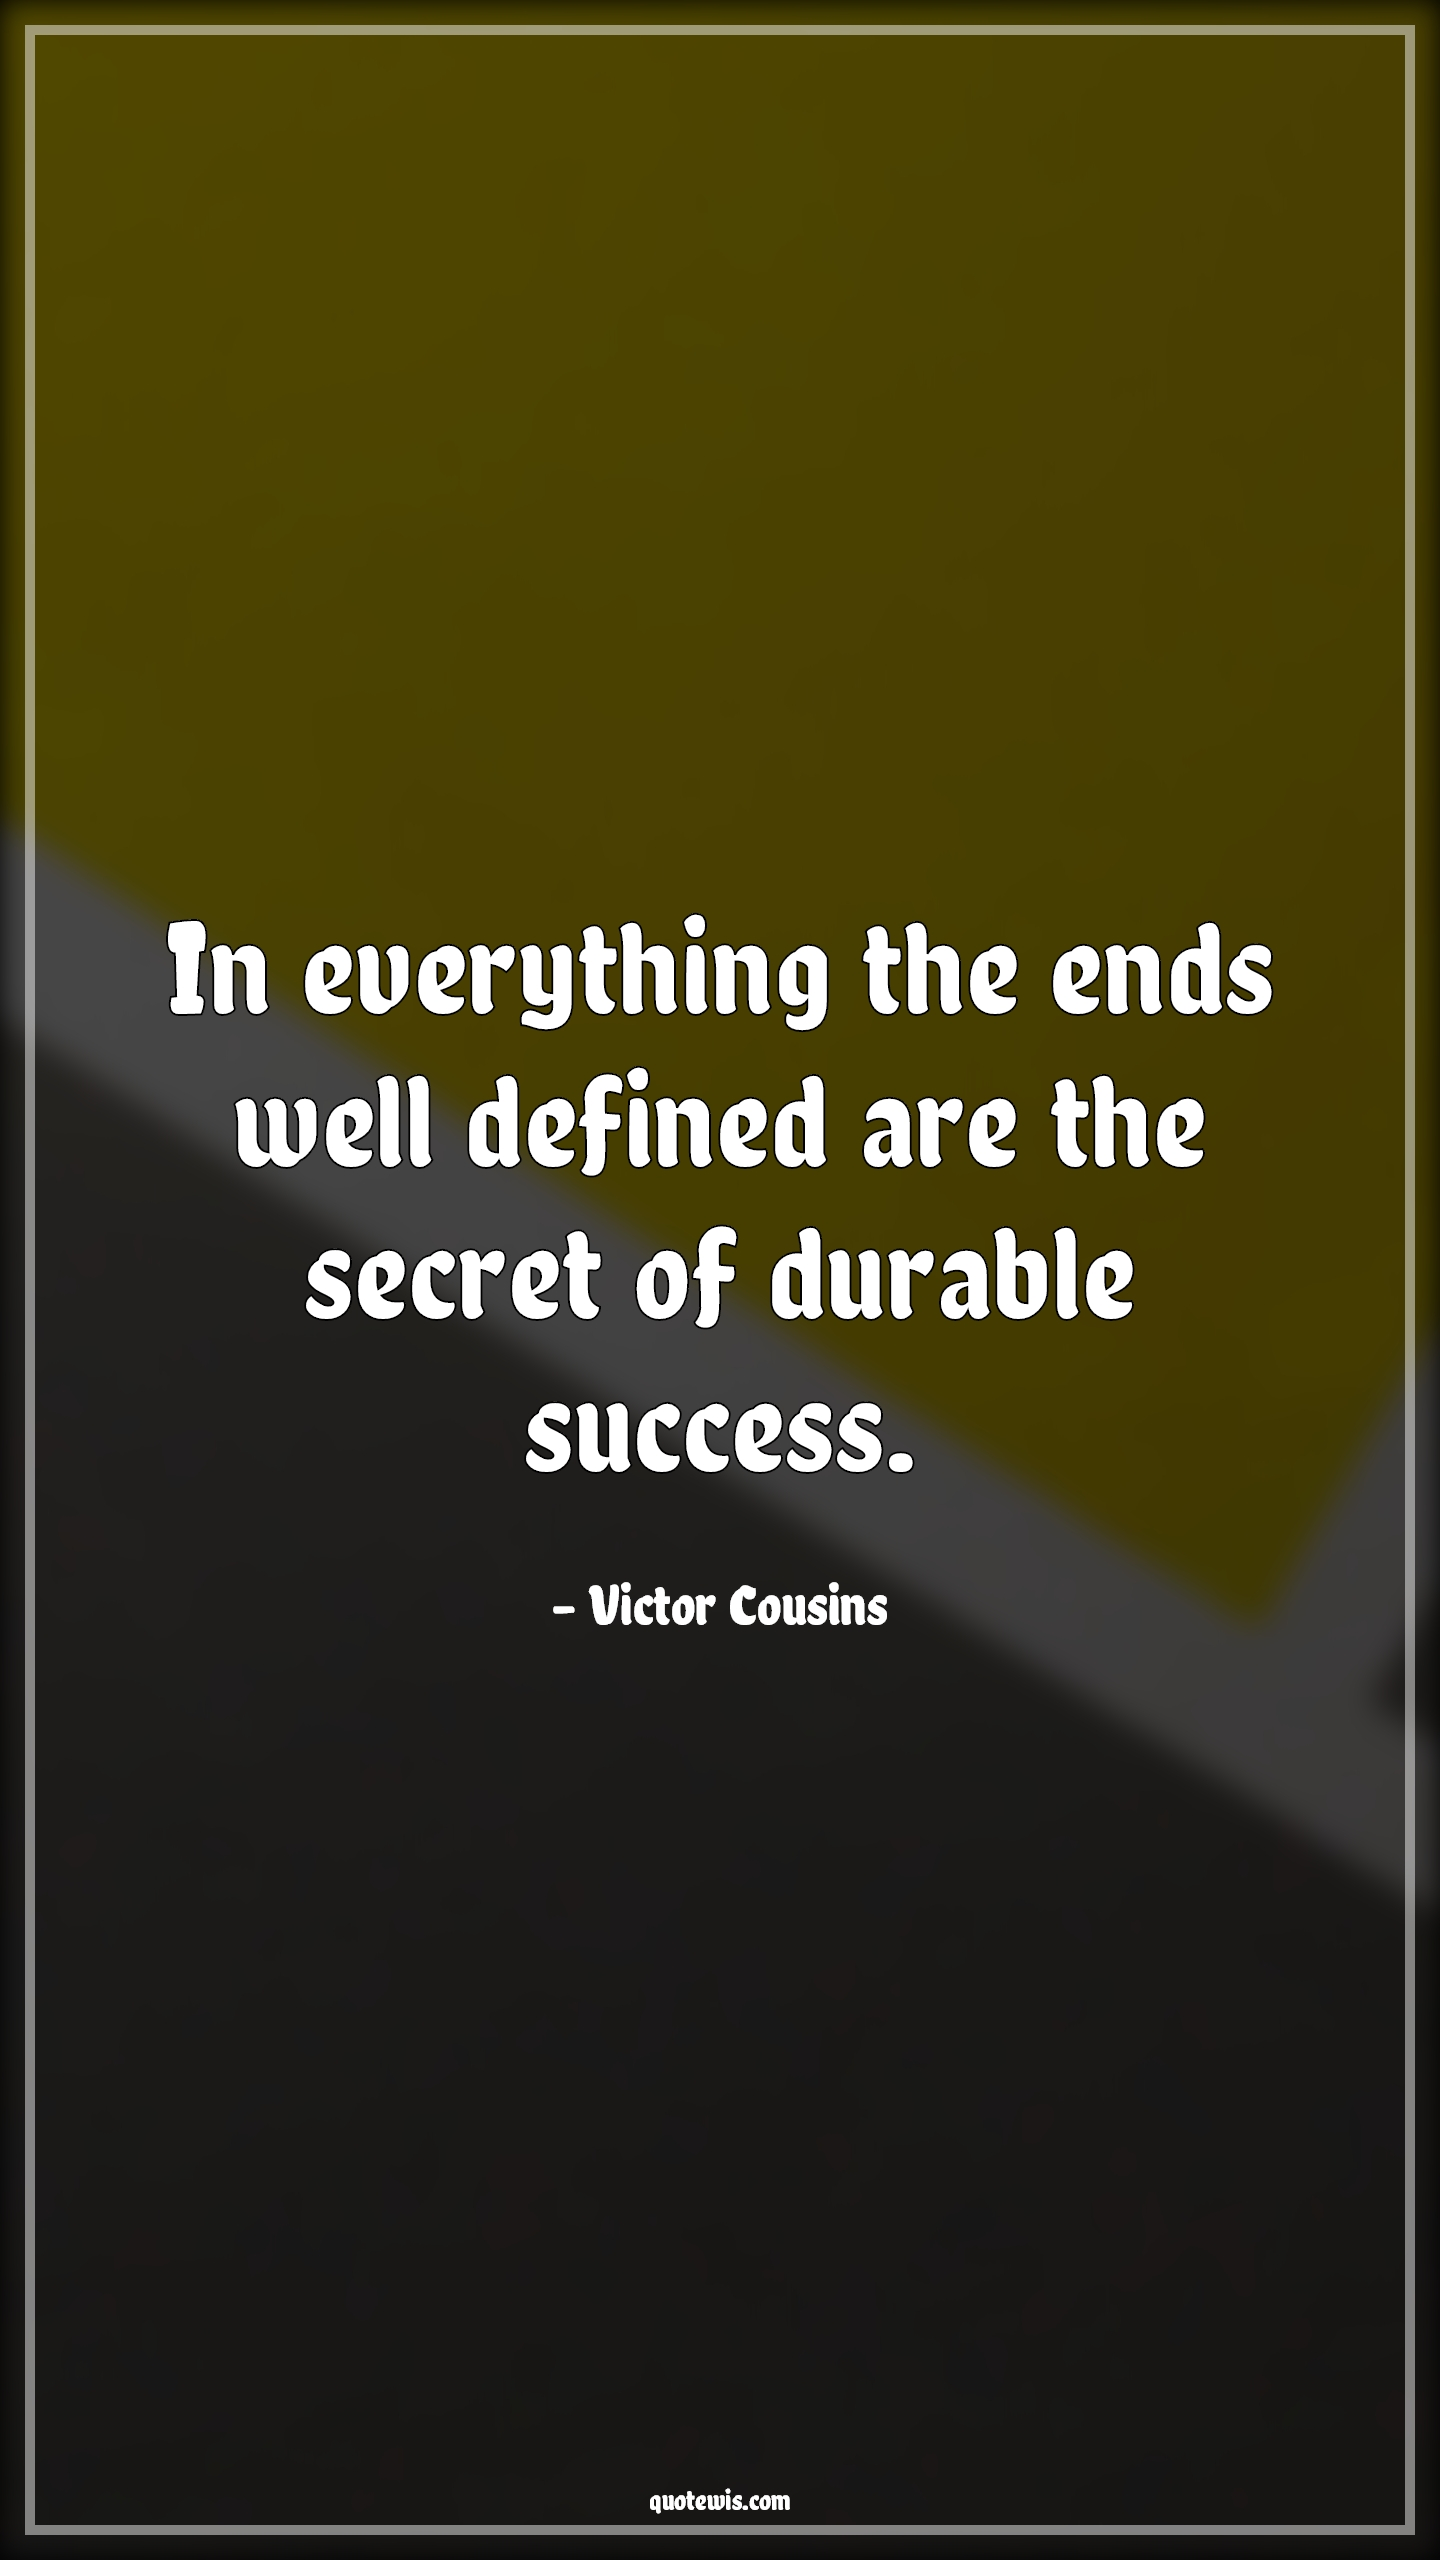 In everything the ends well defined are the secret of durable success.